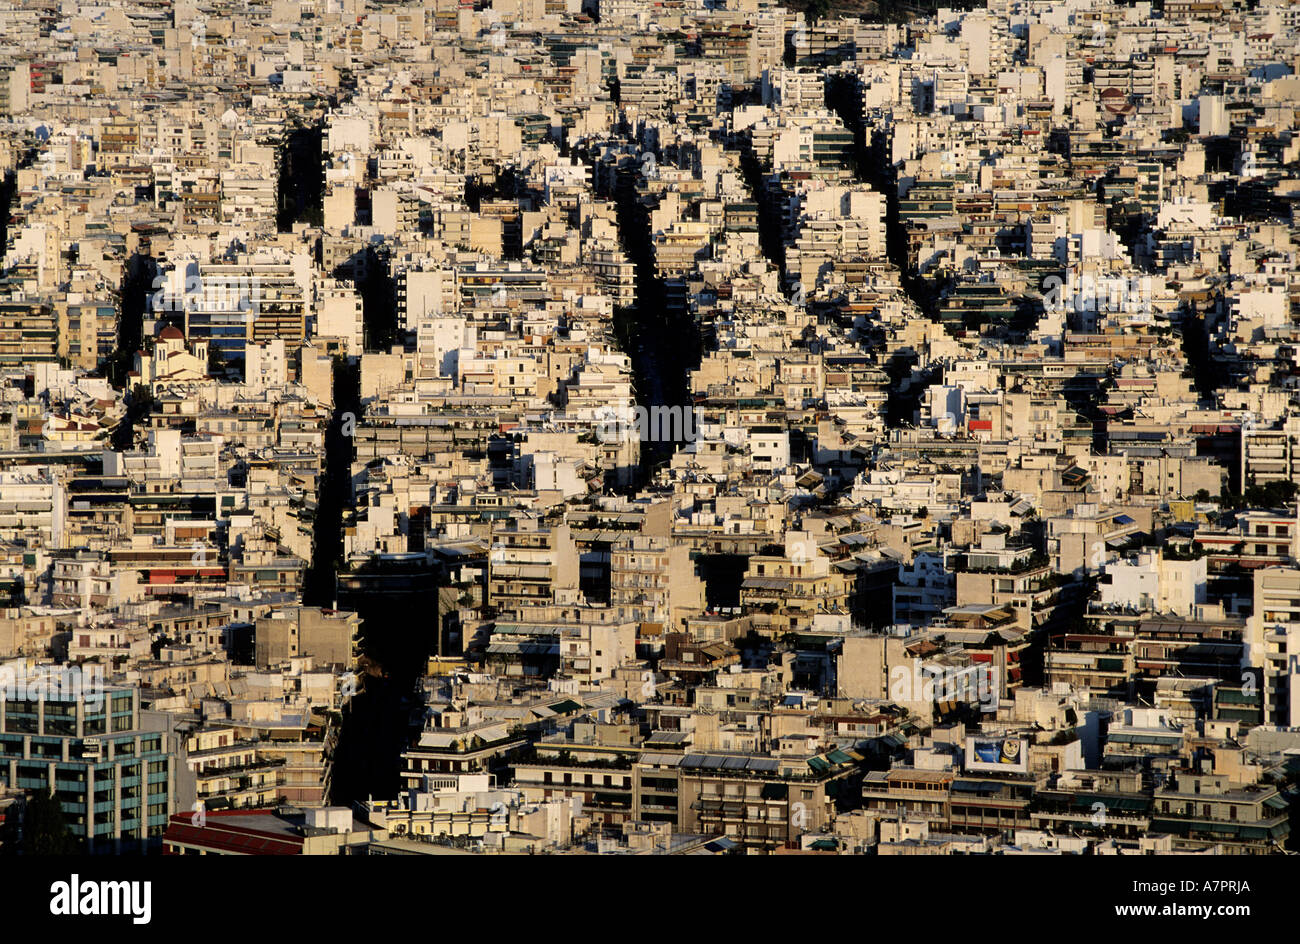 Greece, Athens, the city-center is excessively urbanized - Stock Image